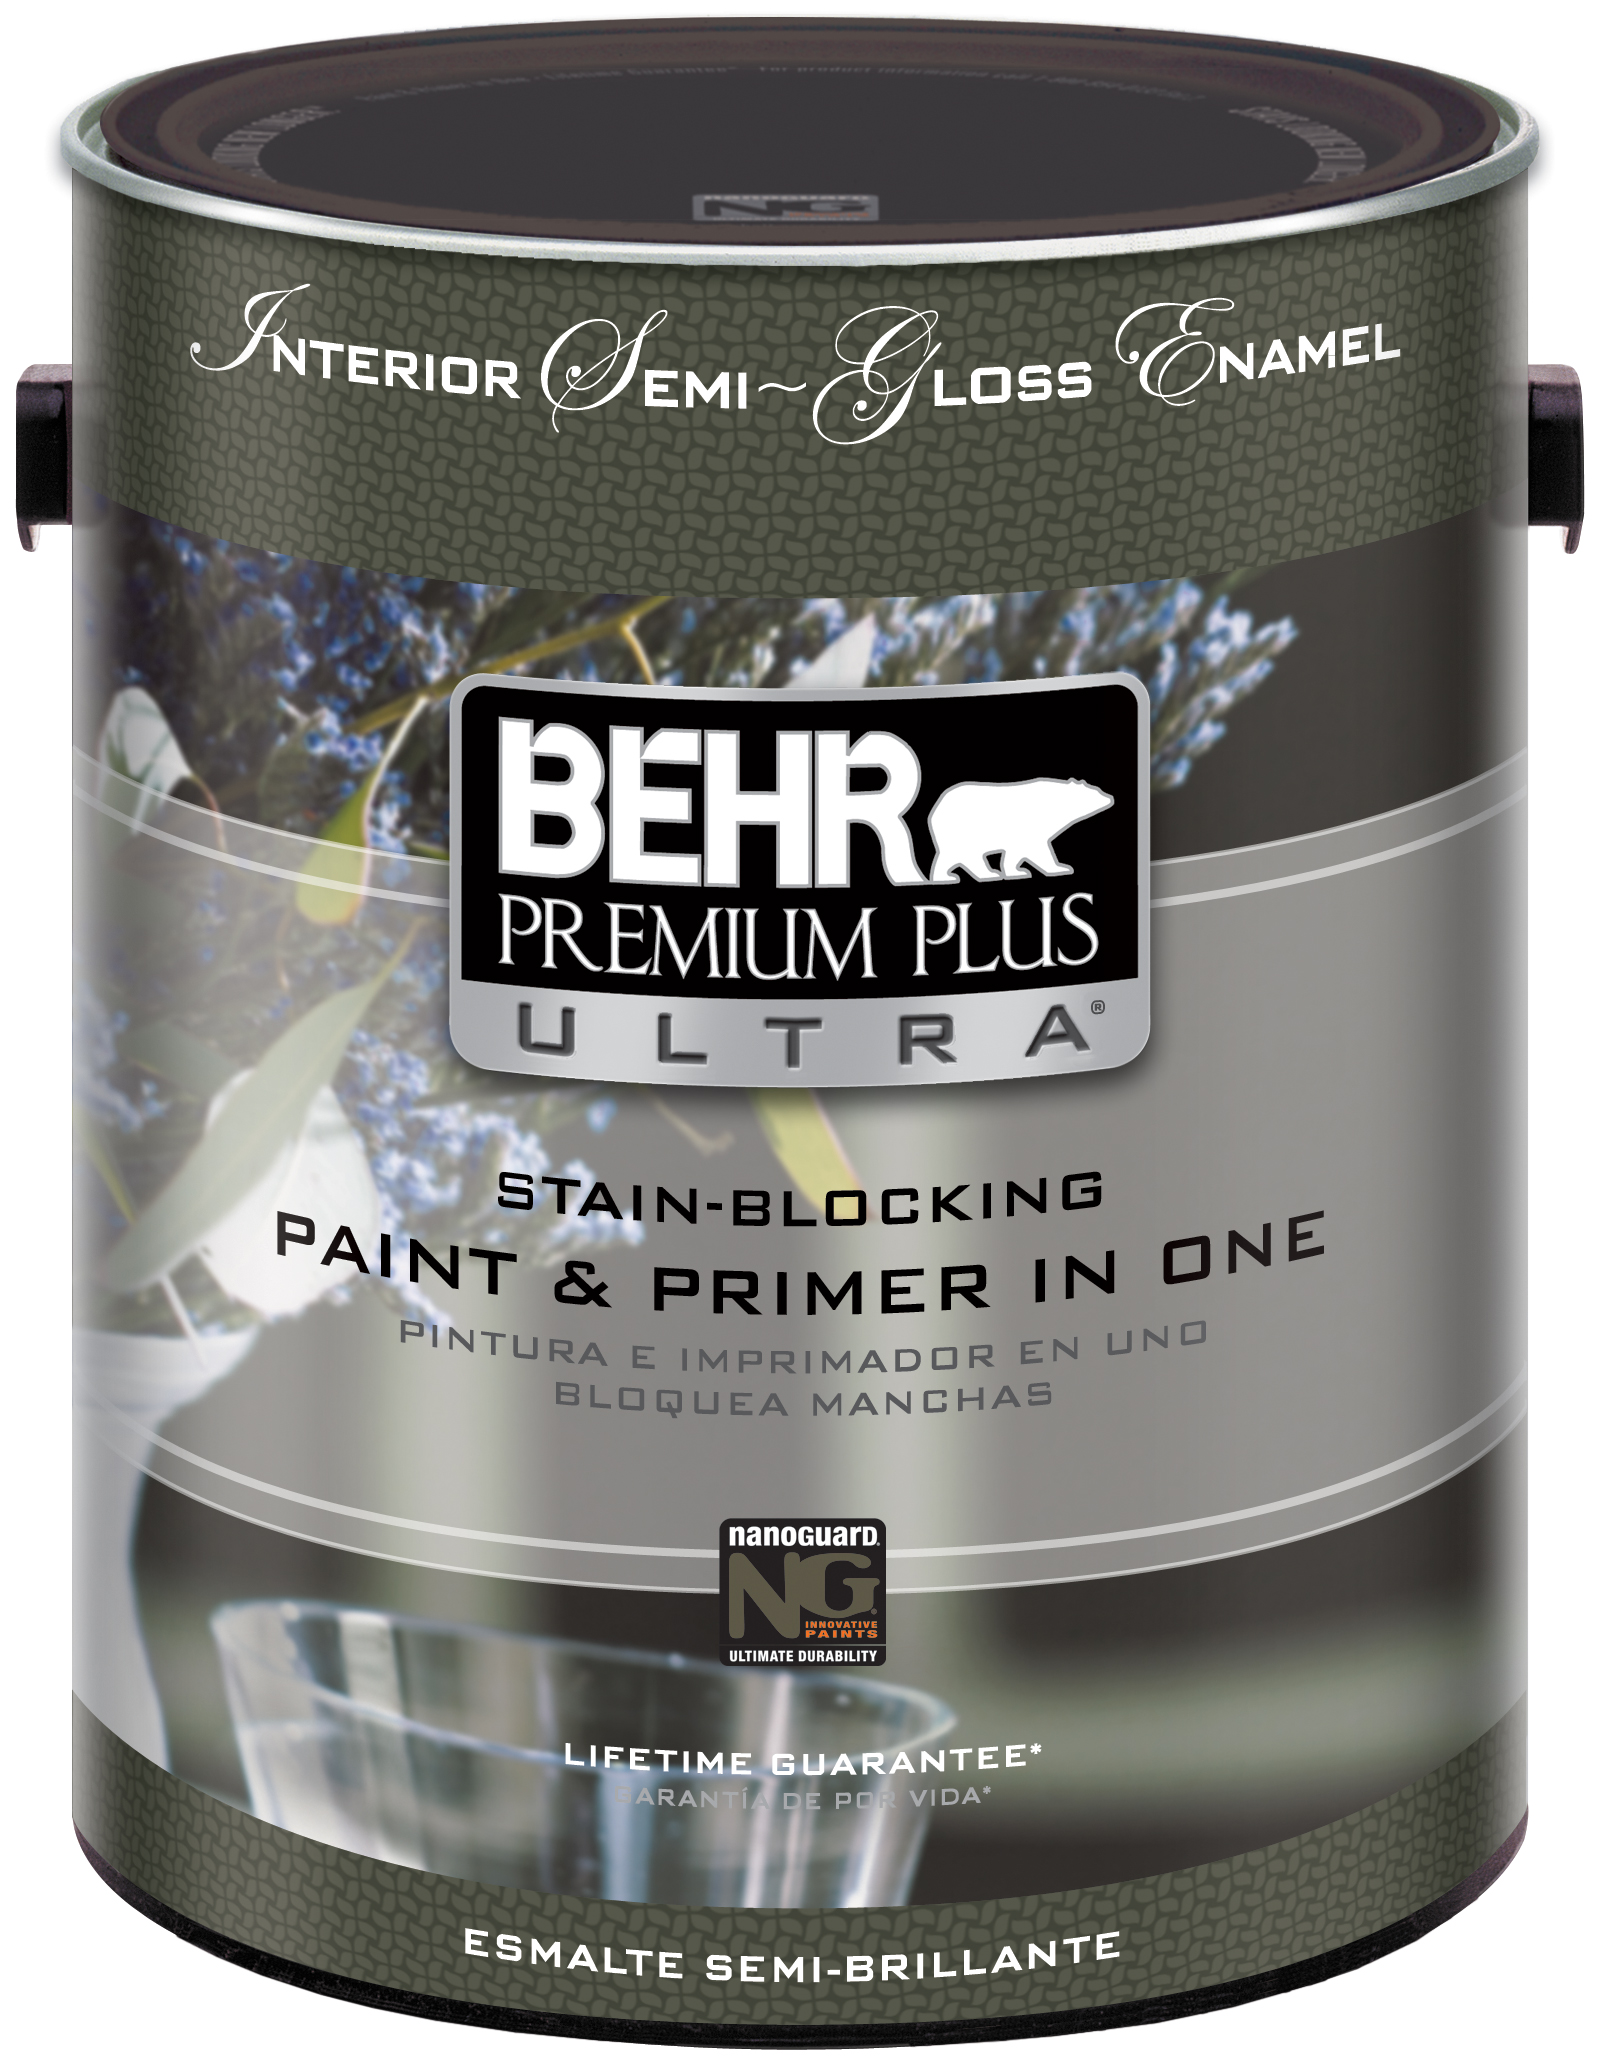 Better Than Ever Enhanced Behr Premium Plus Ultra Interior Paint Primer In One Is The Ideal